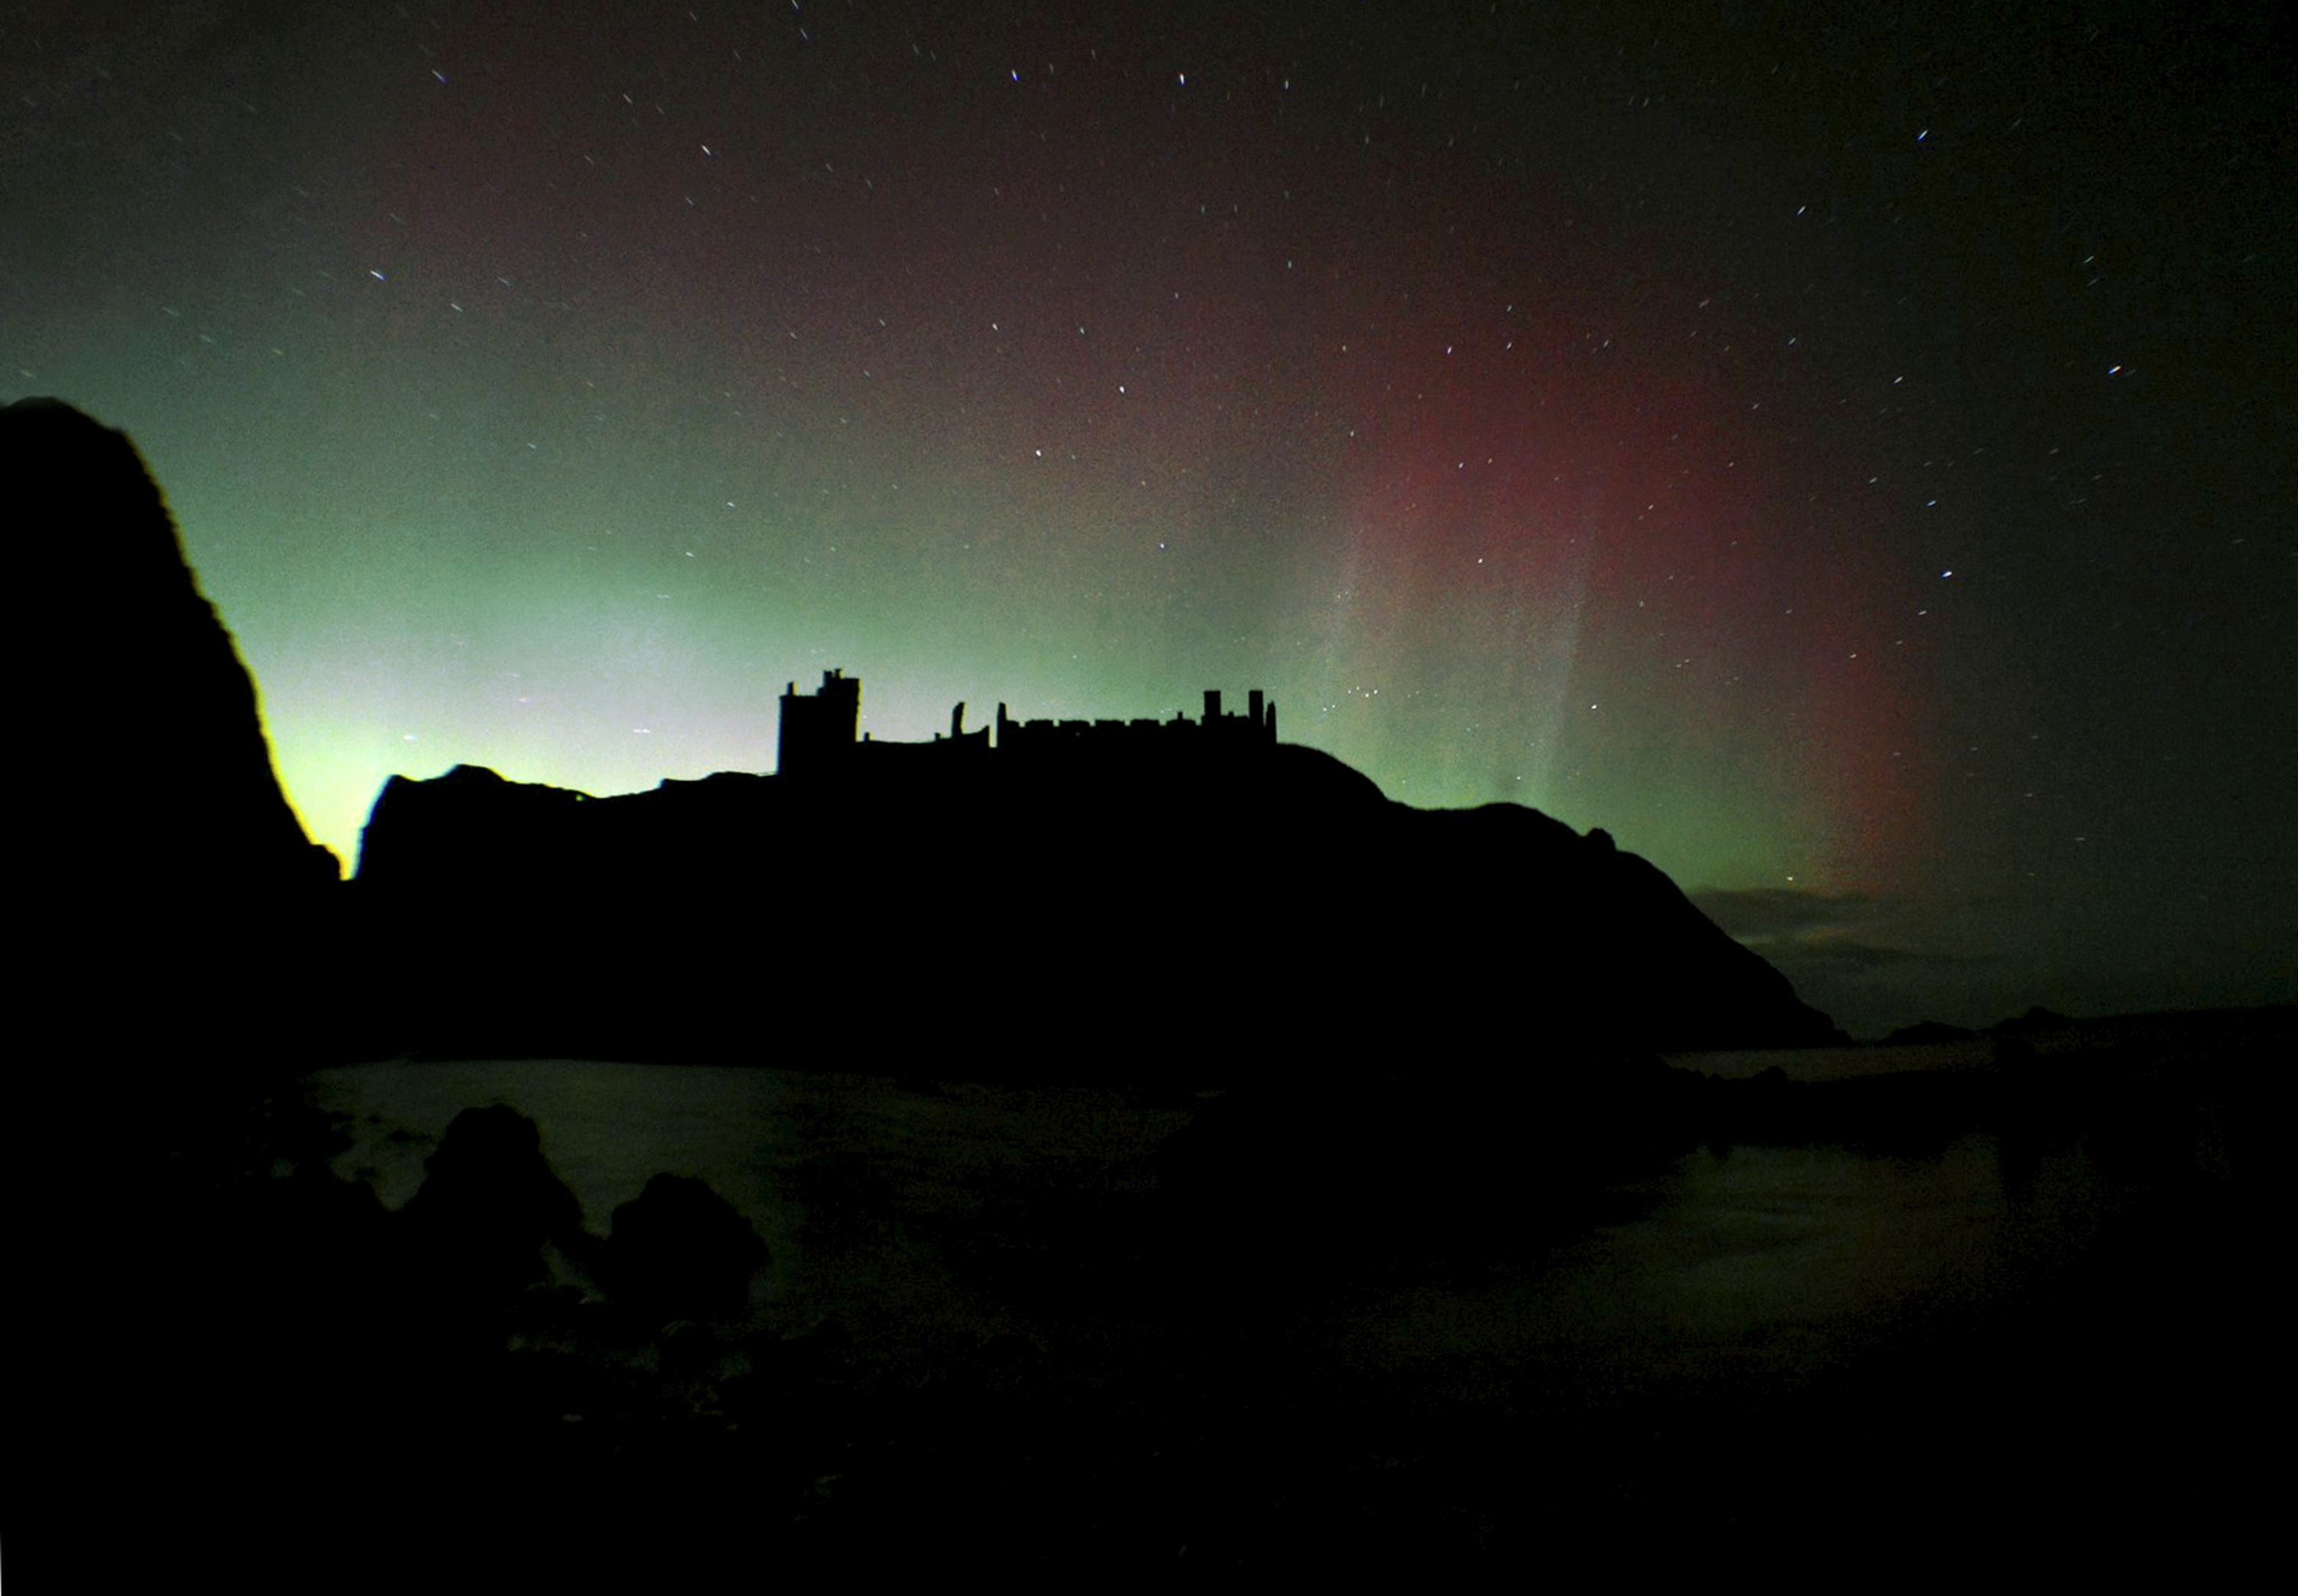 Northern Lights over Dunnotar Castle last night. Picture by Iain Cackette